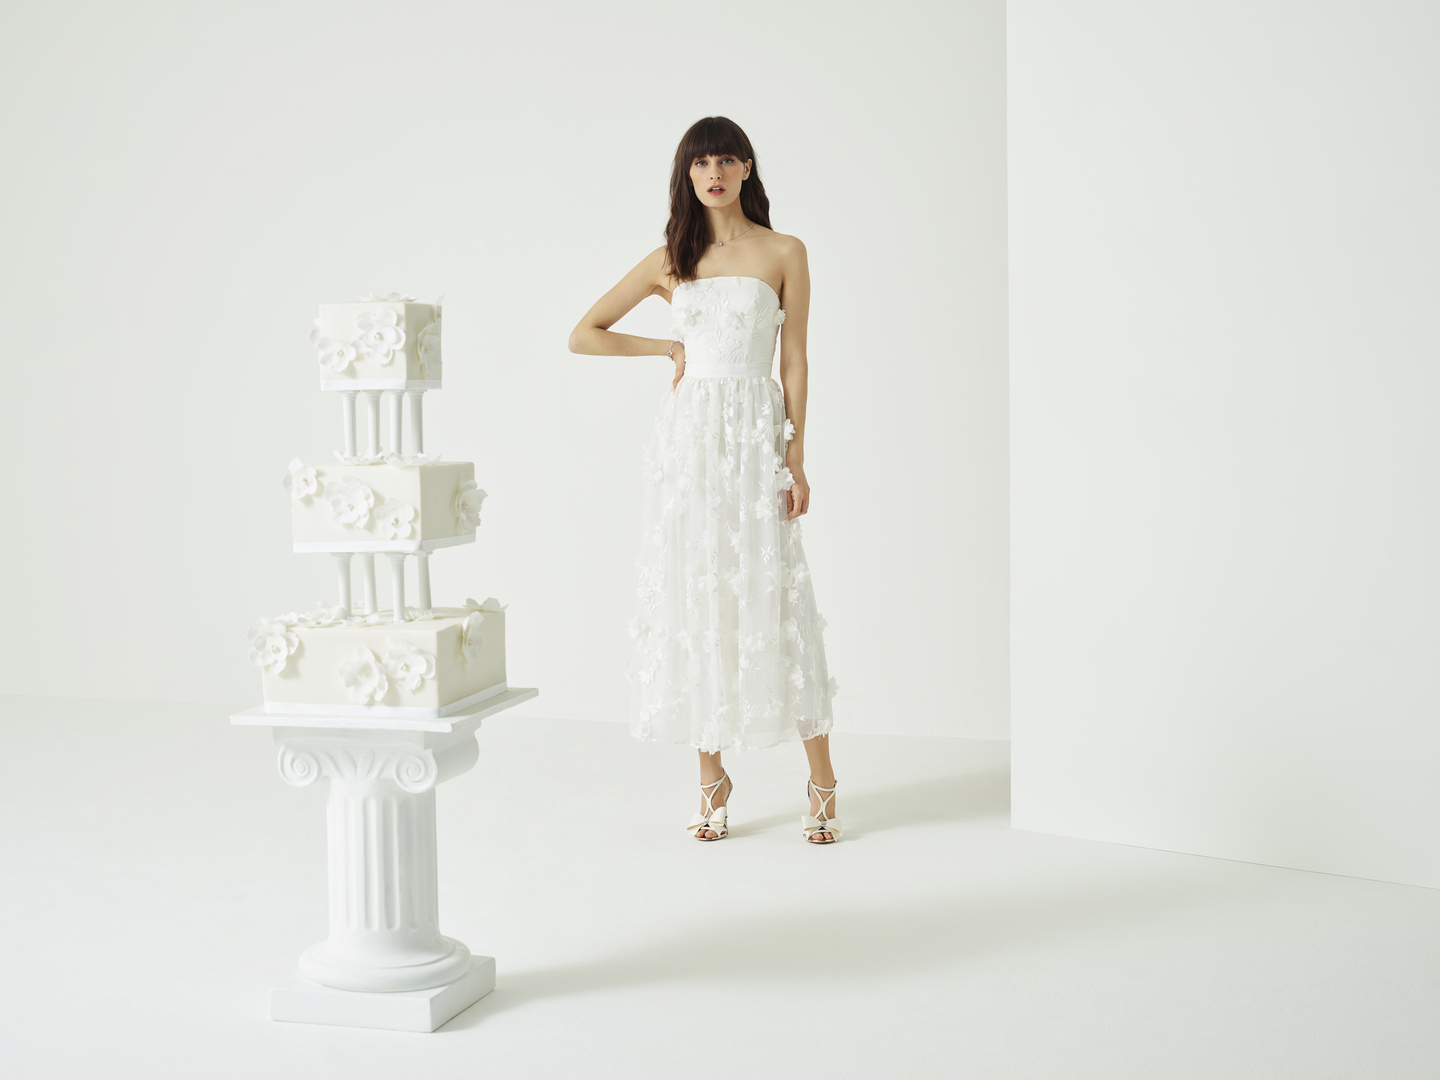 518e02592cc0 Strapless Applique Wedding Dress from the new Ted Baker SS19 Tie the Knot  collection.